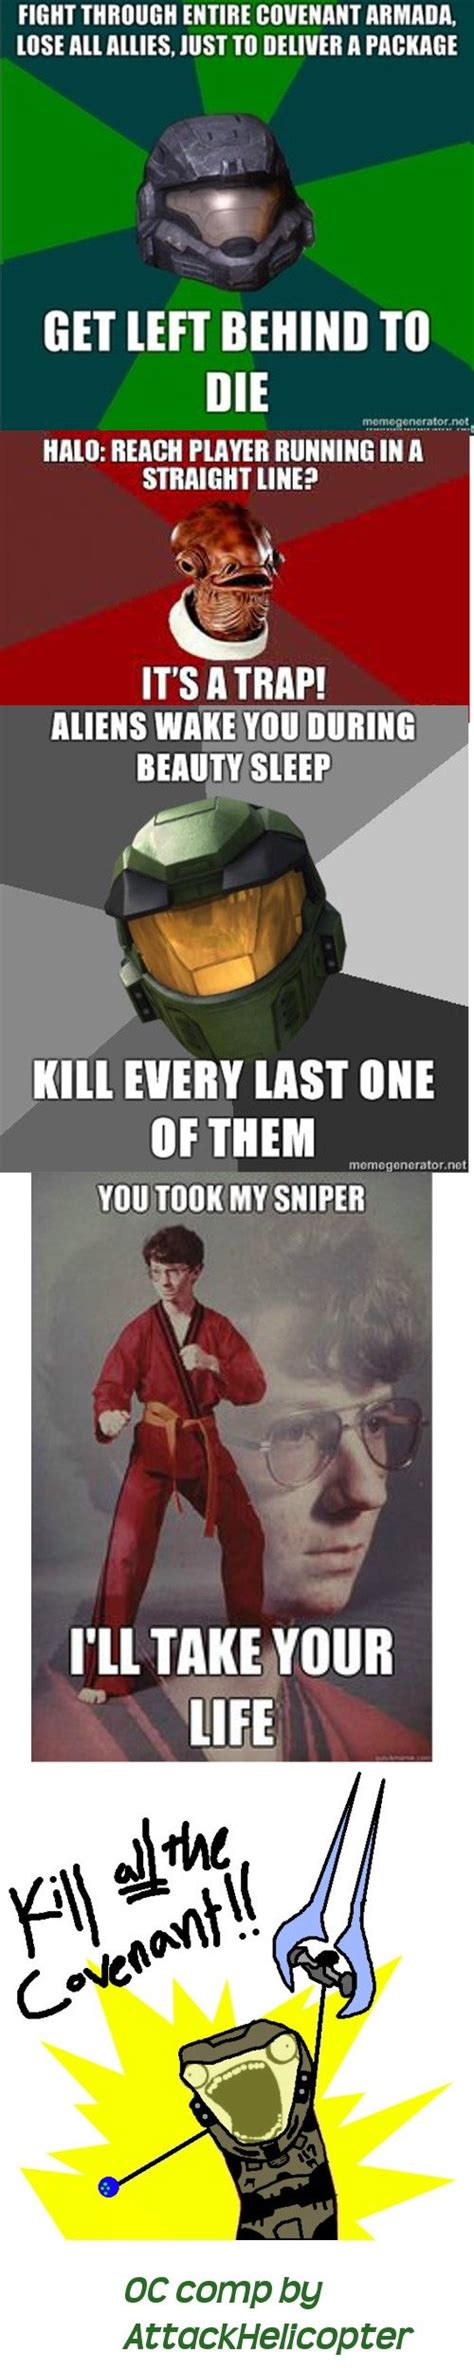 Halo Reach Memes - halo meme 2 by leonxiong on deviantart